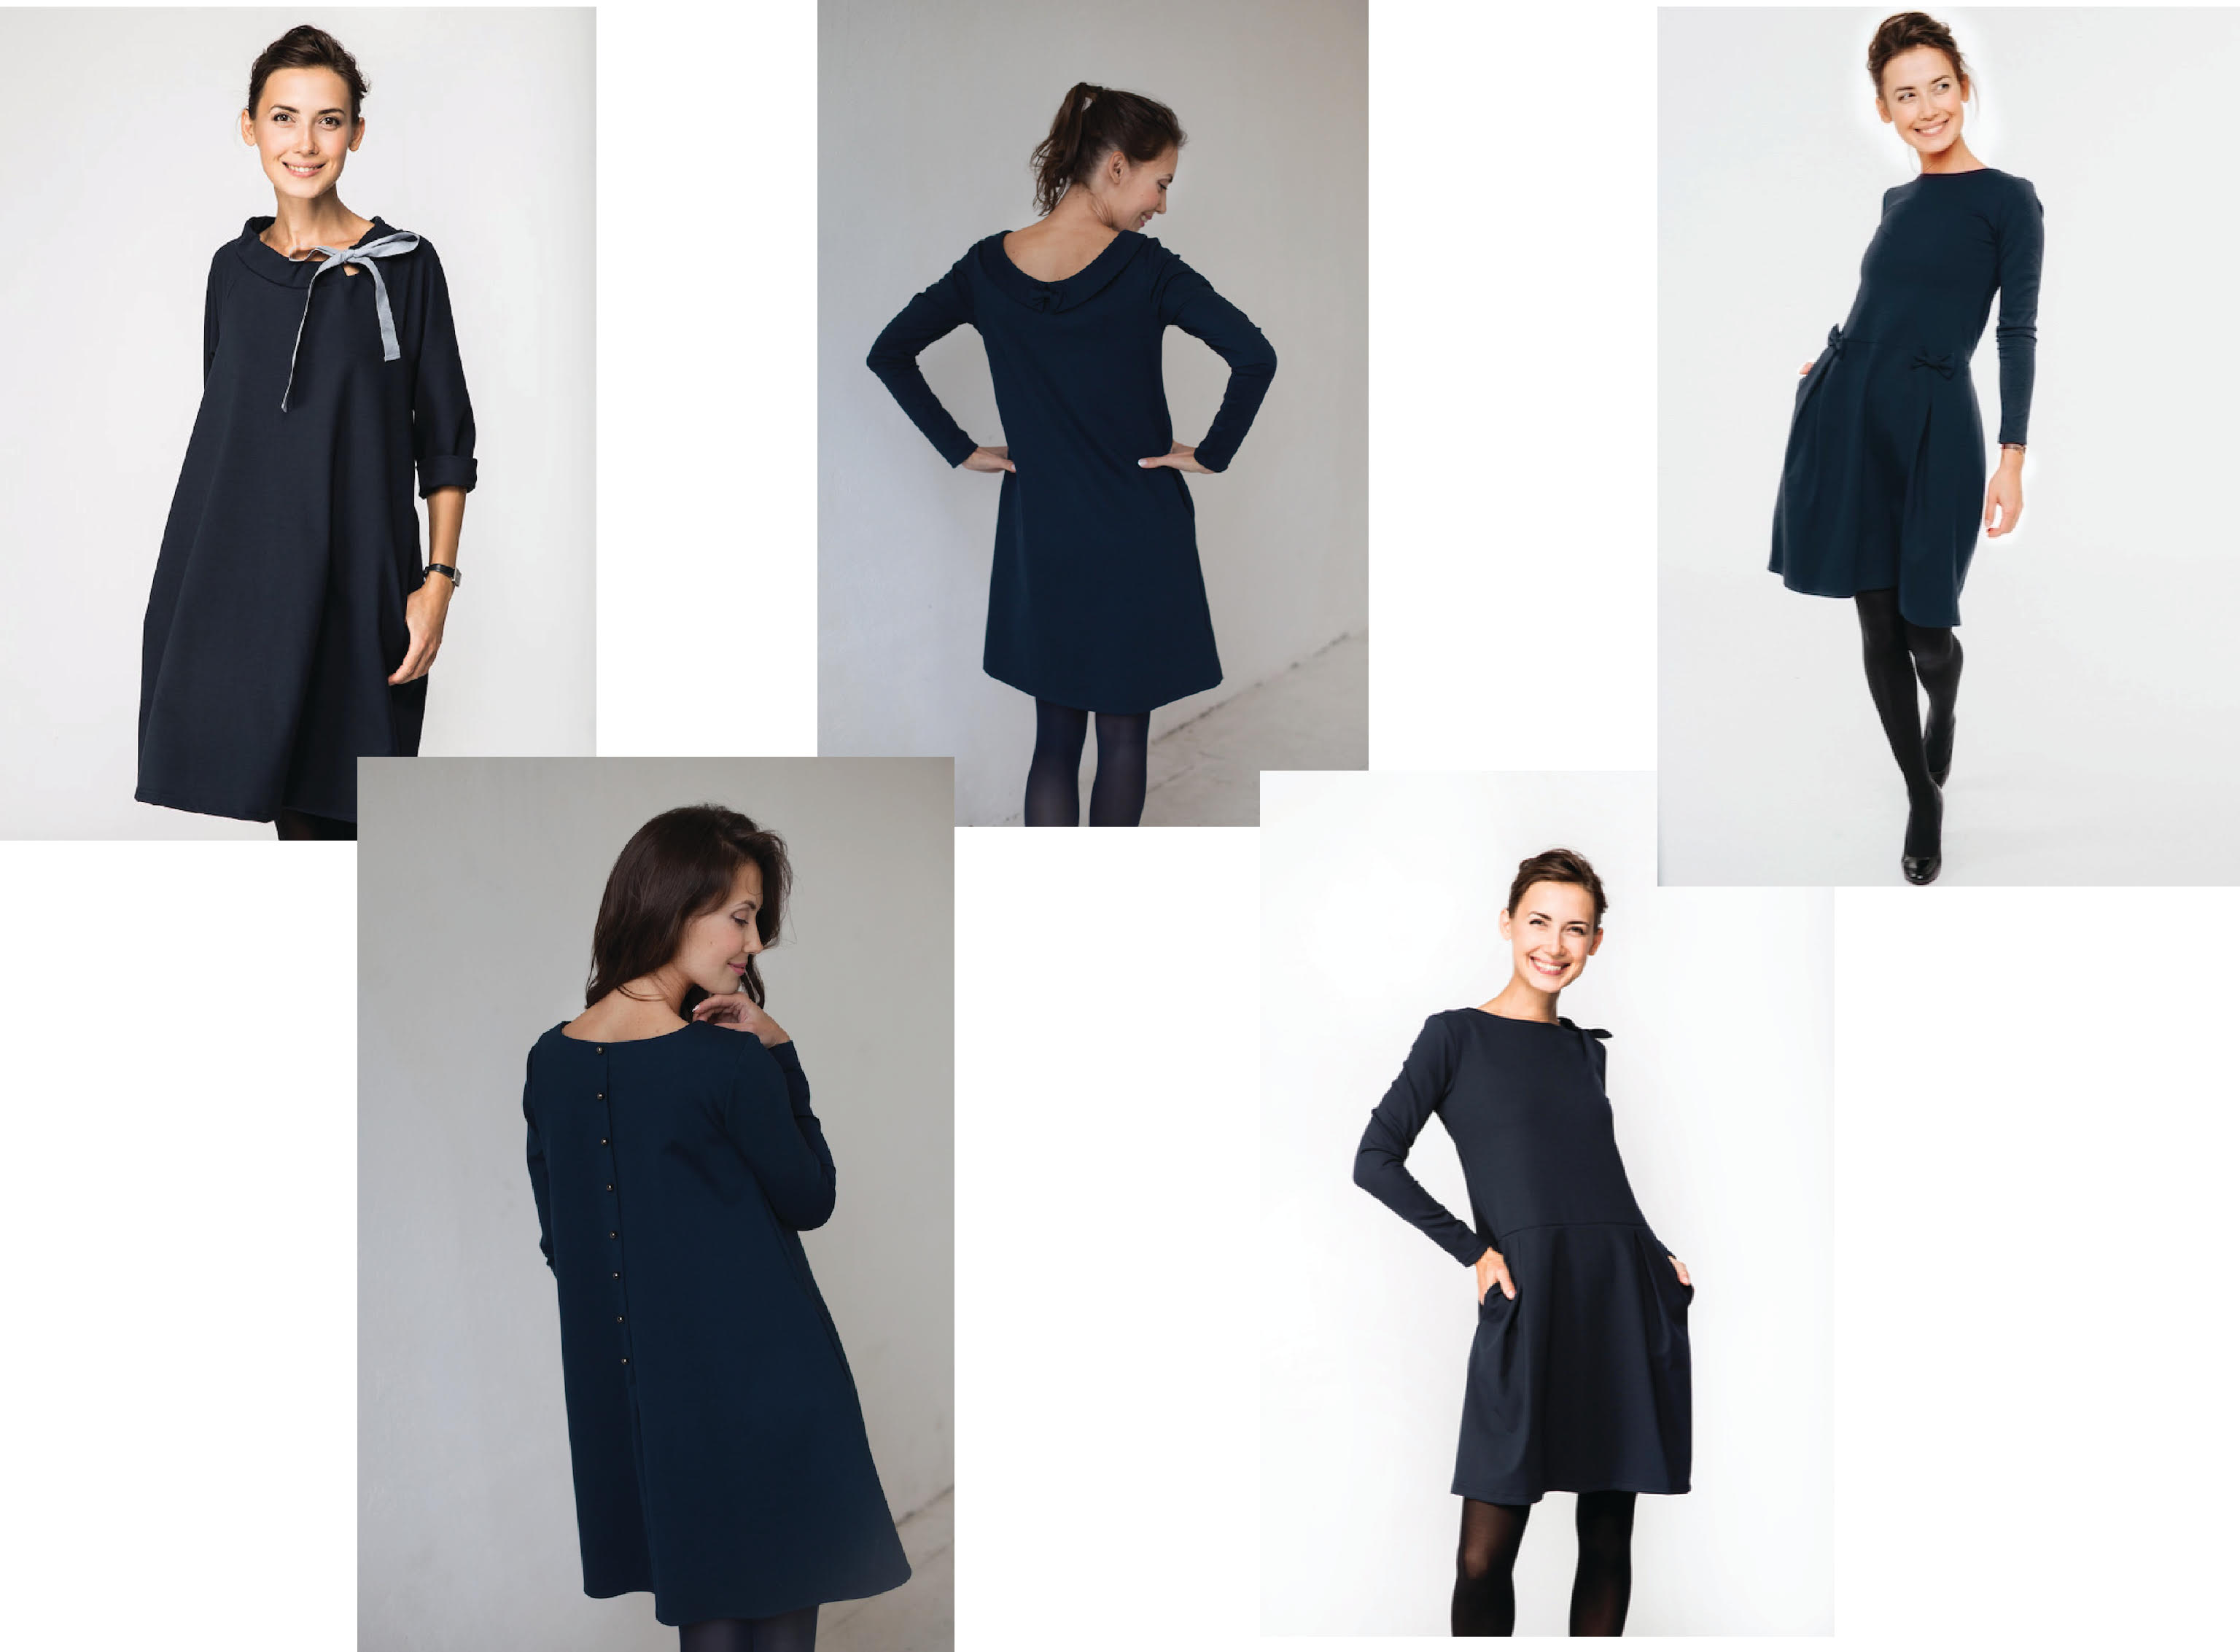 Elegant dresses for all occasions